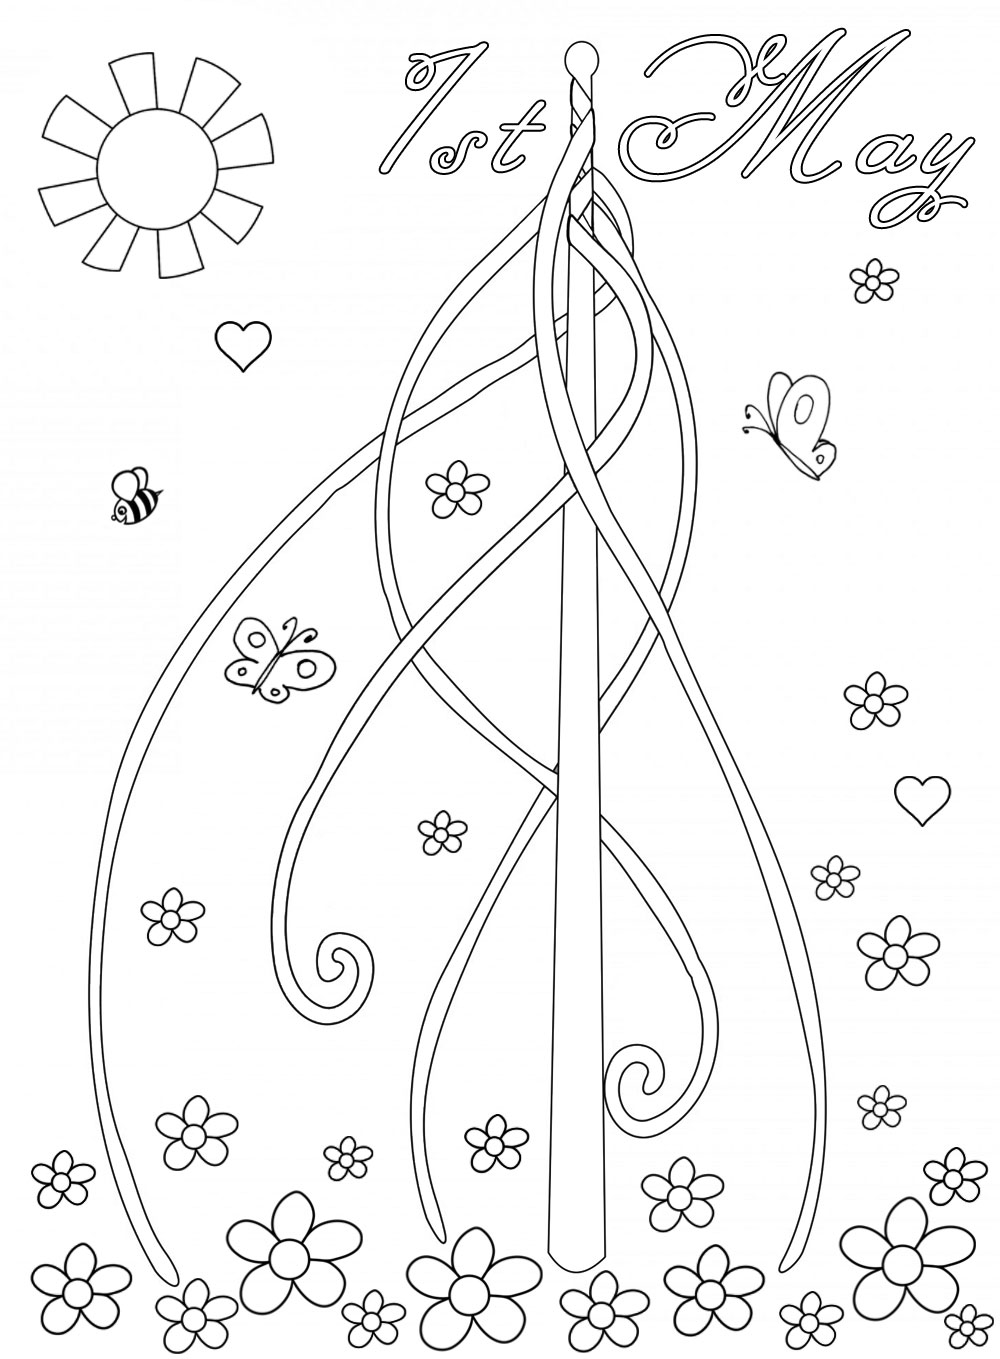 Picture of a maypole for children to colour in.